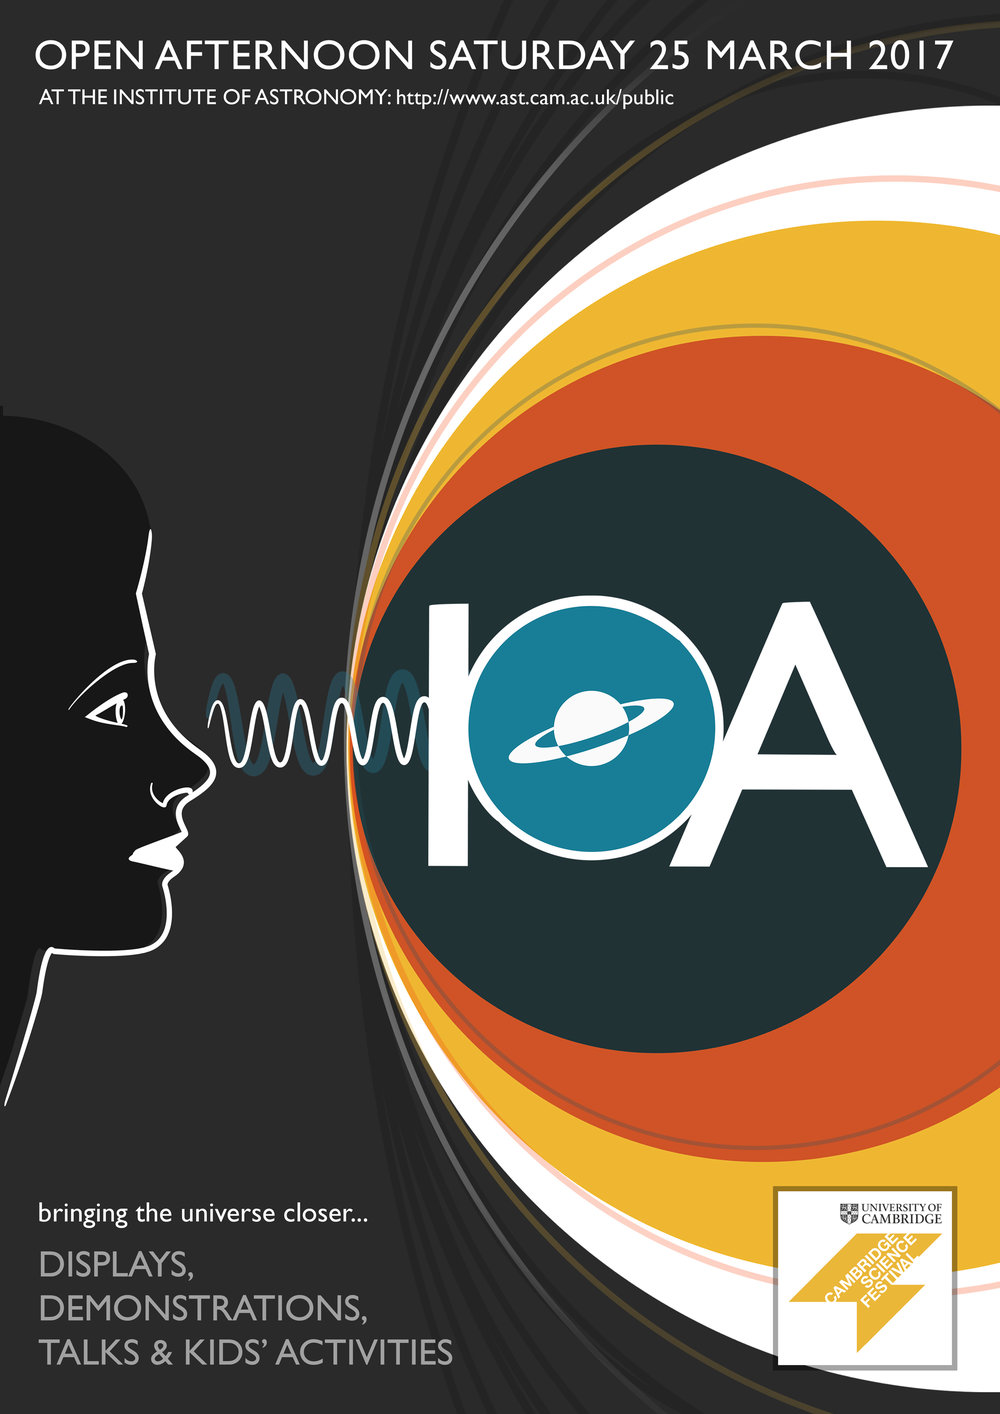 Education and outreach at the IoA